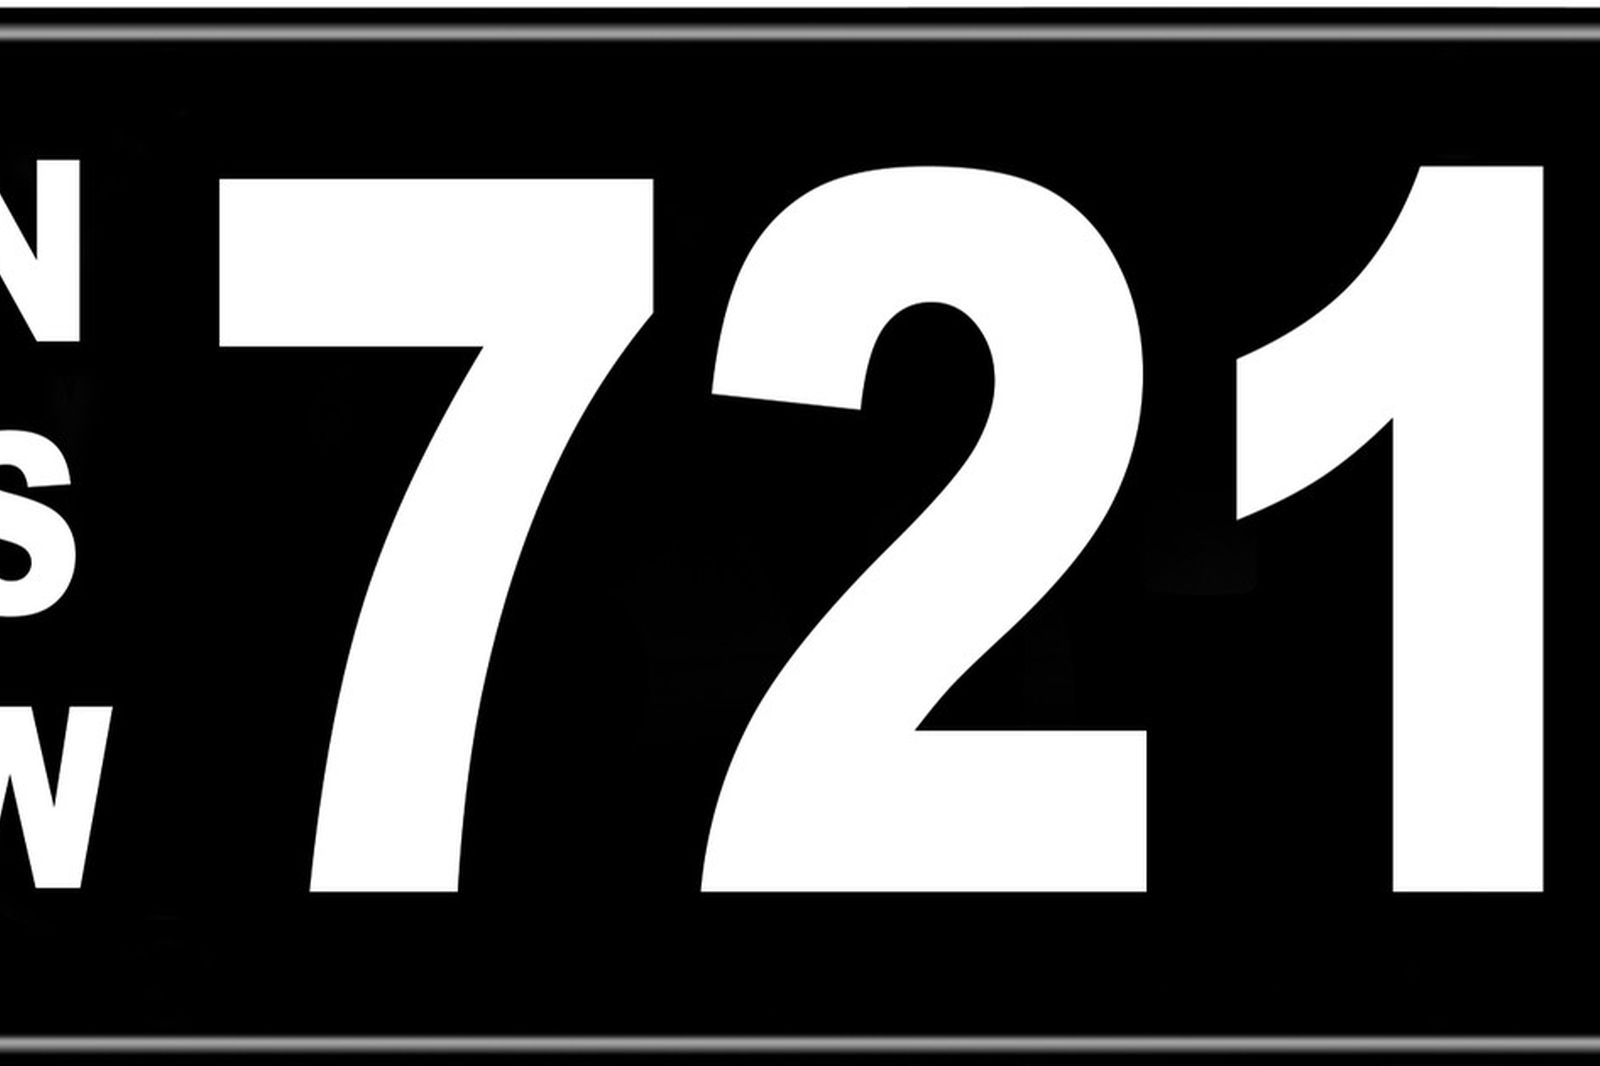 Number Plates - NSW Numerical Number Plates '721'